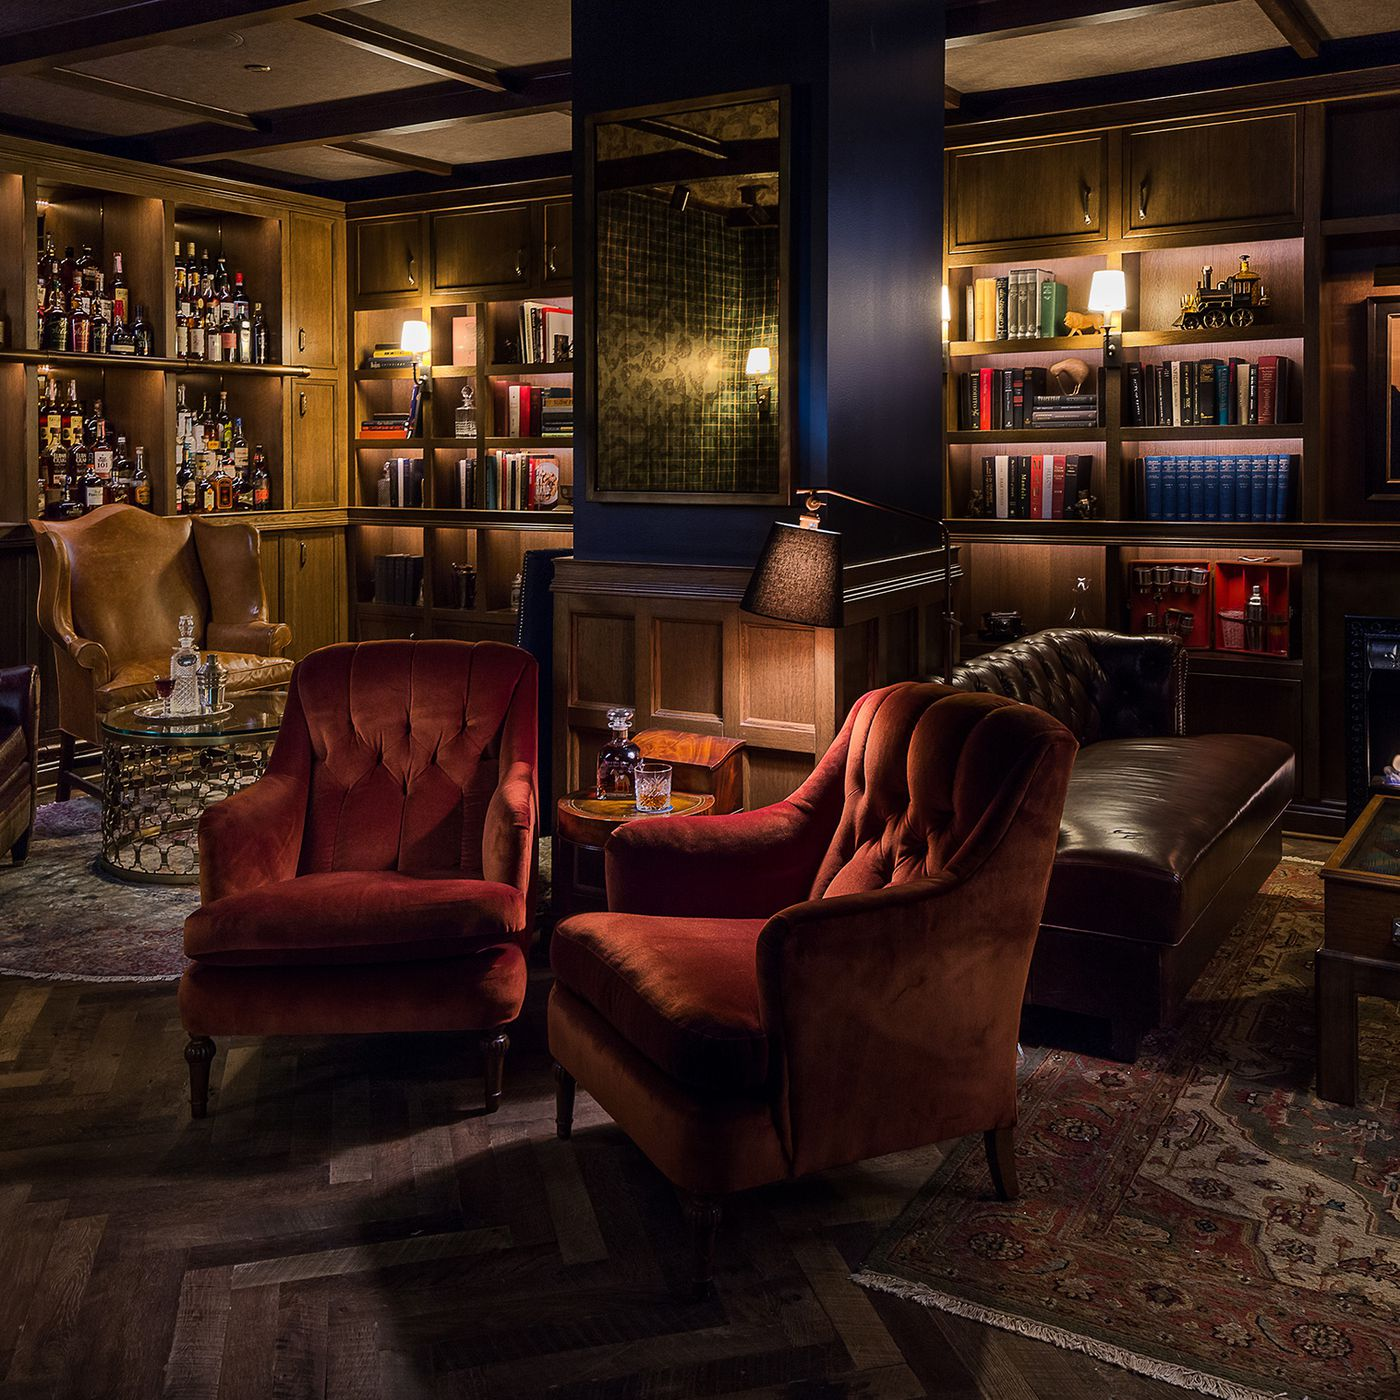 20 Great Chicago Restaurants And Bars With Fireplaces Eater Chicago